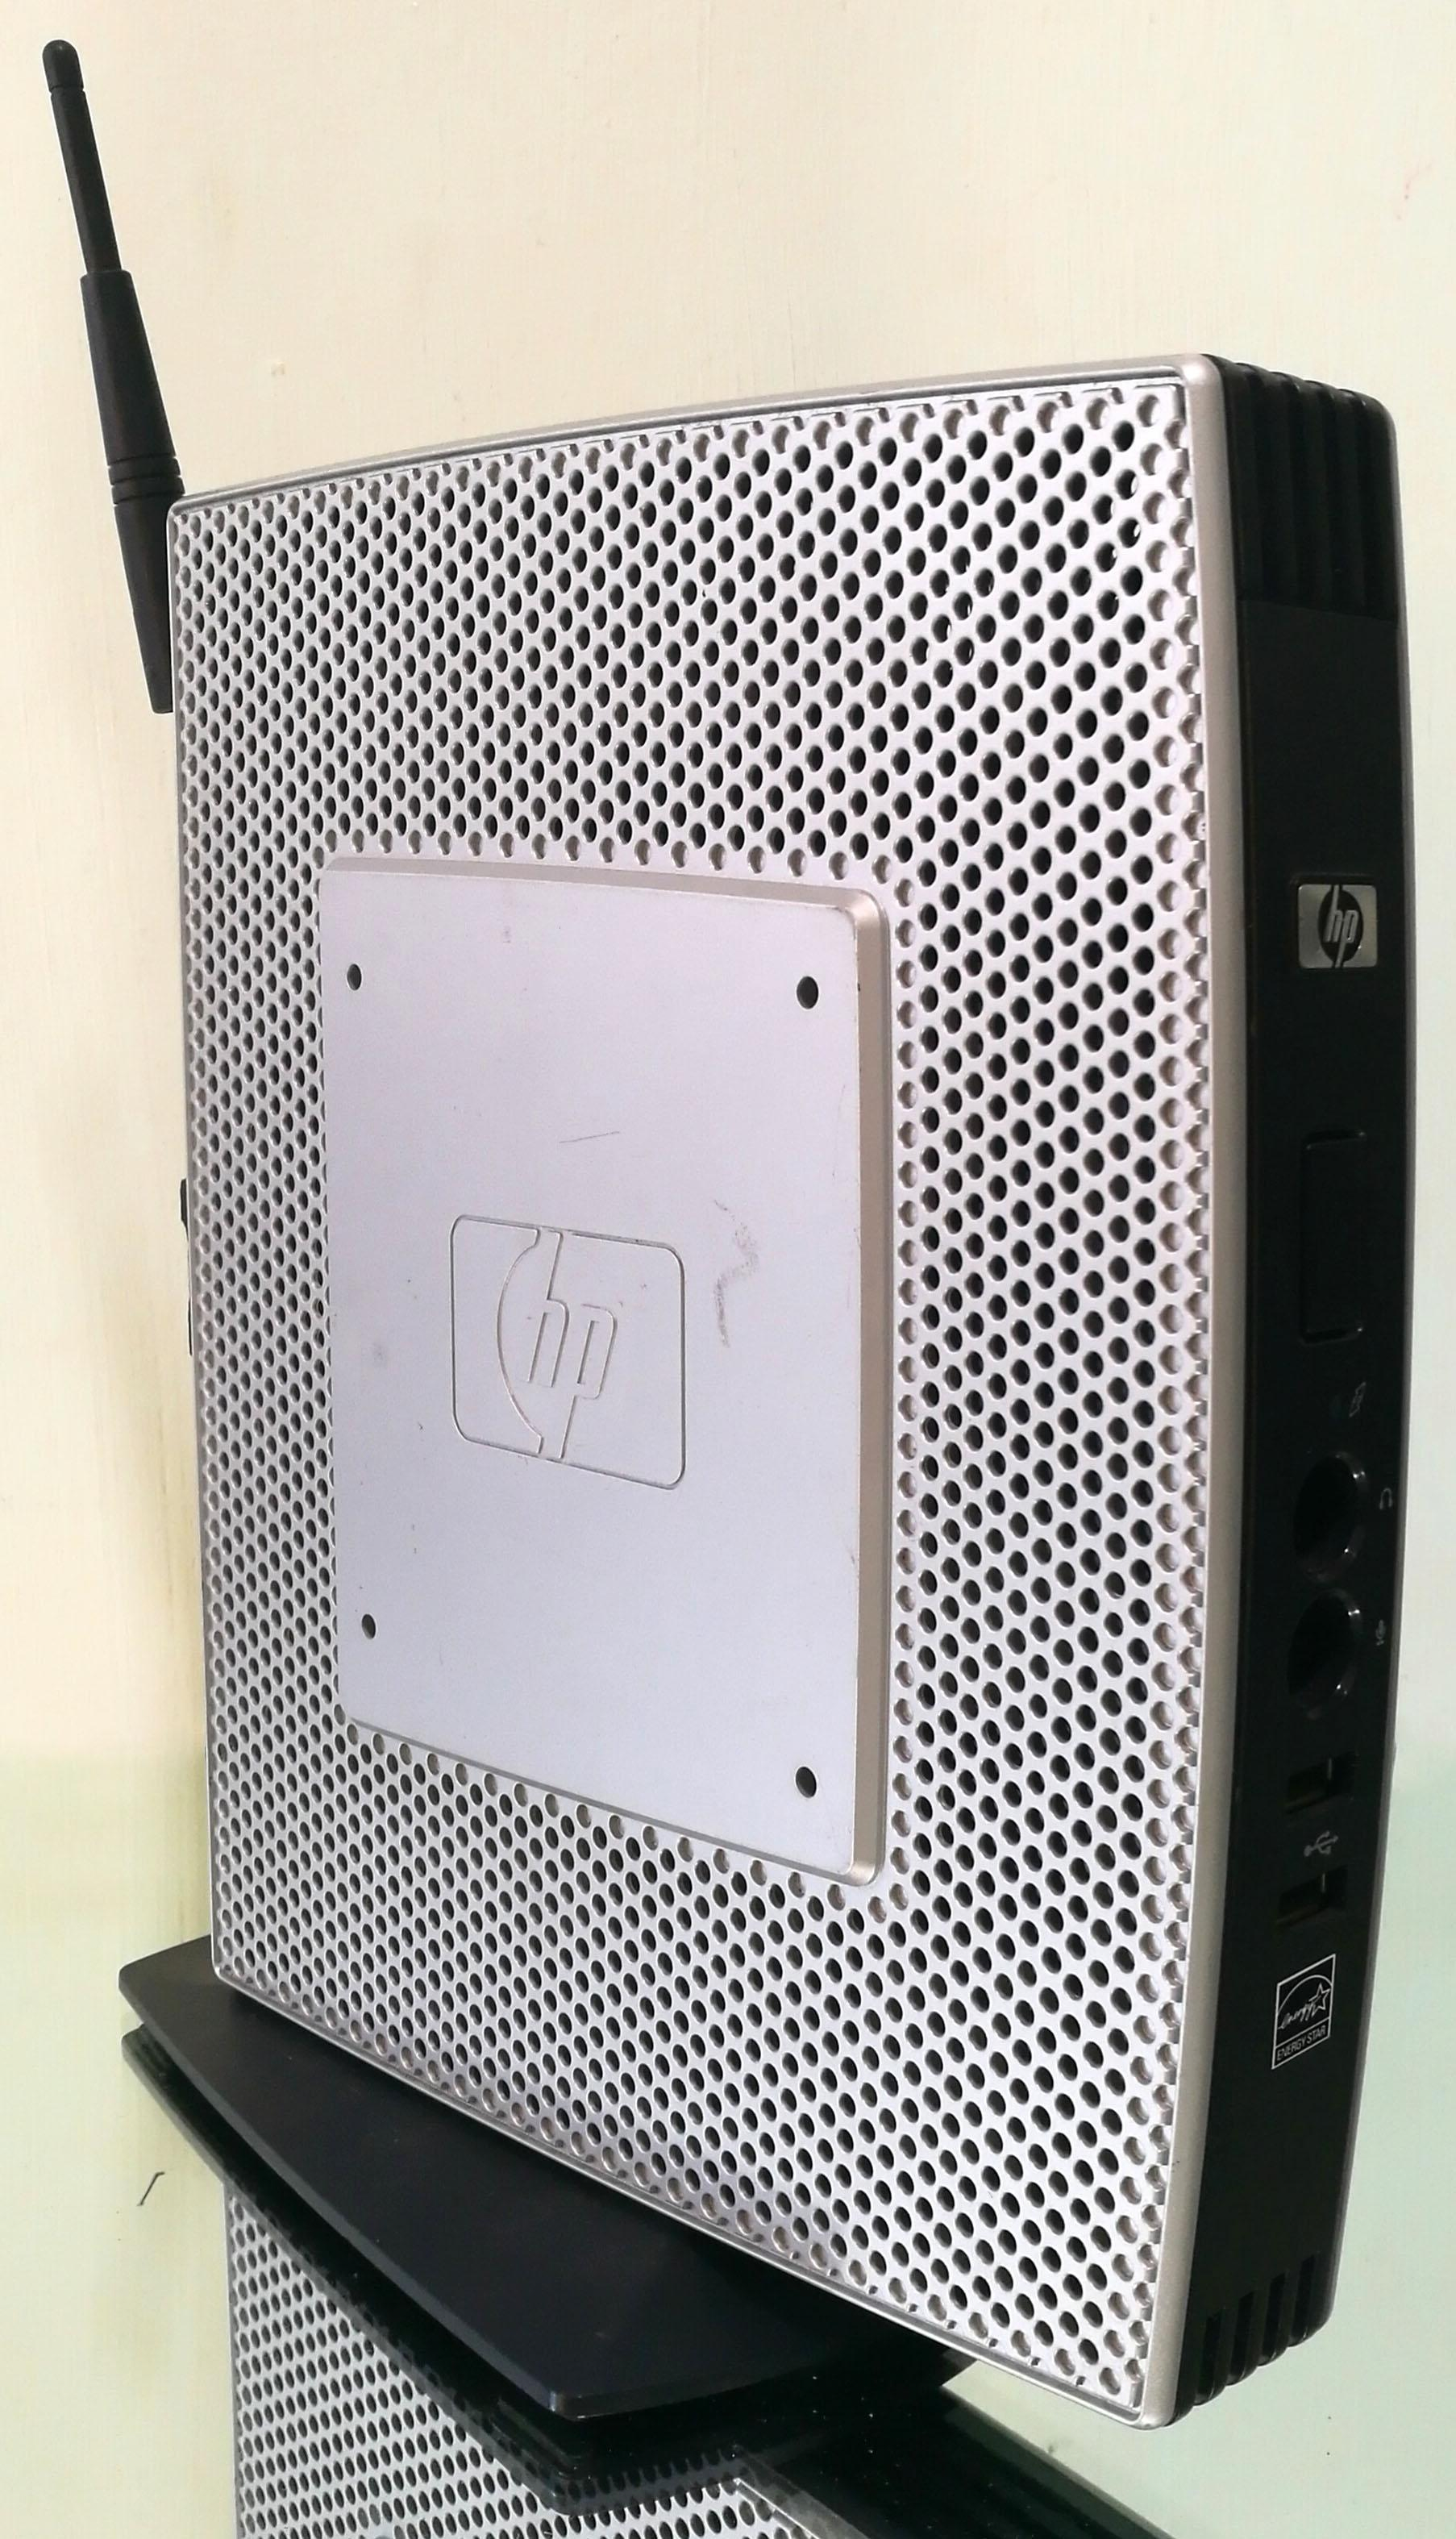 T5520 thin client download